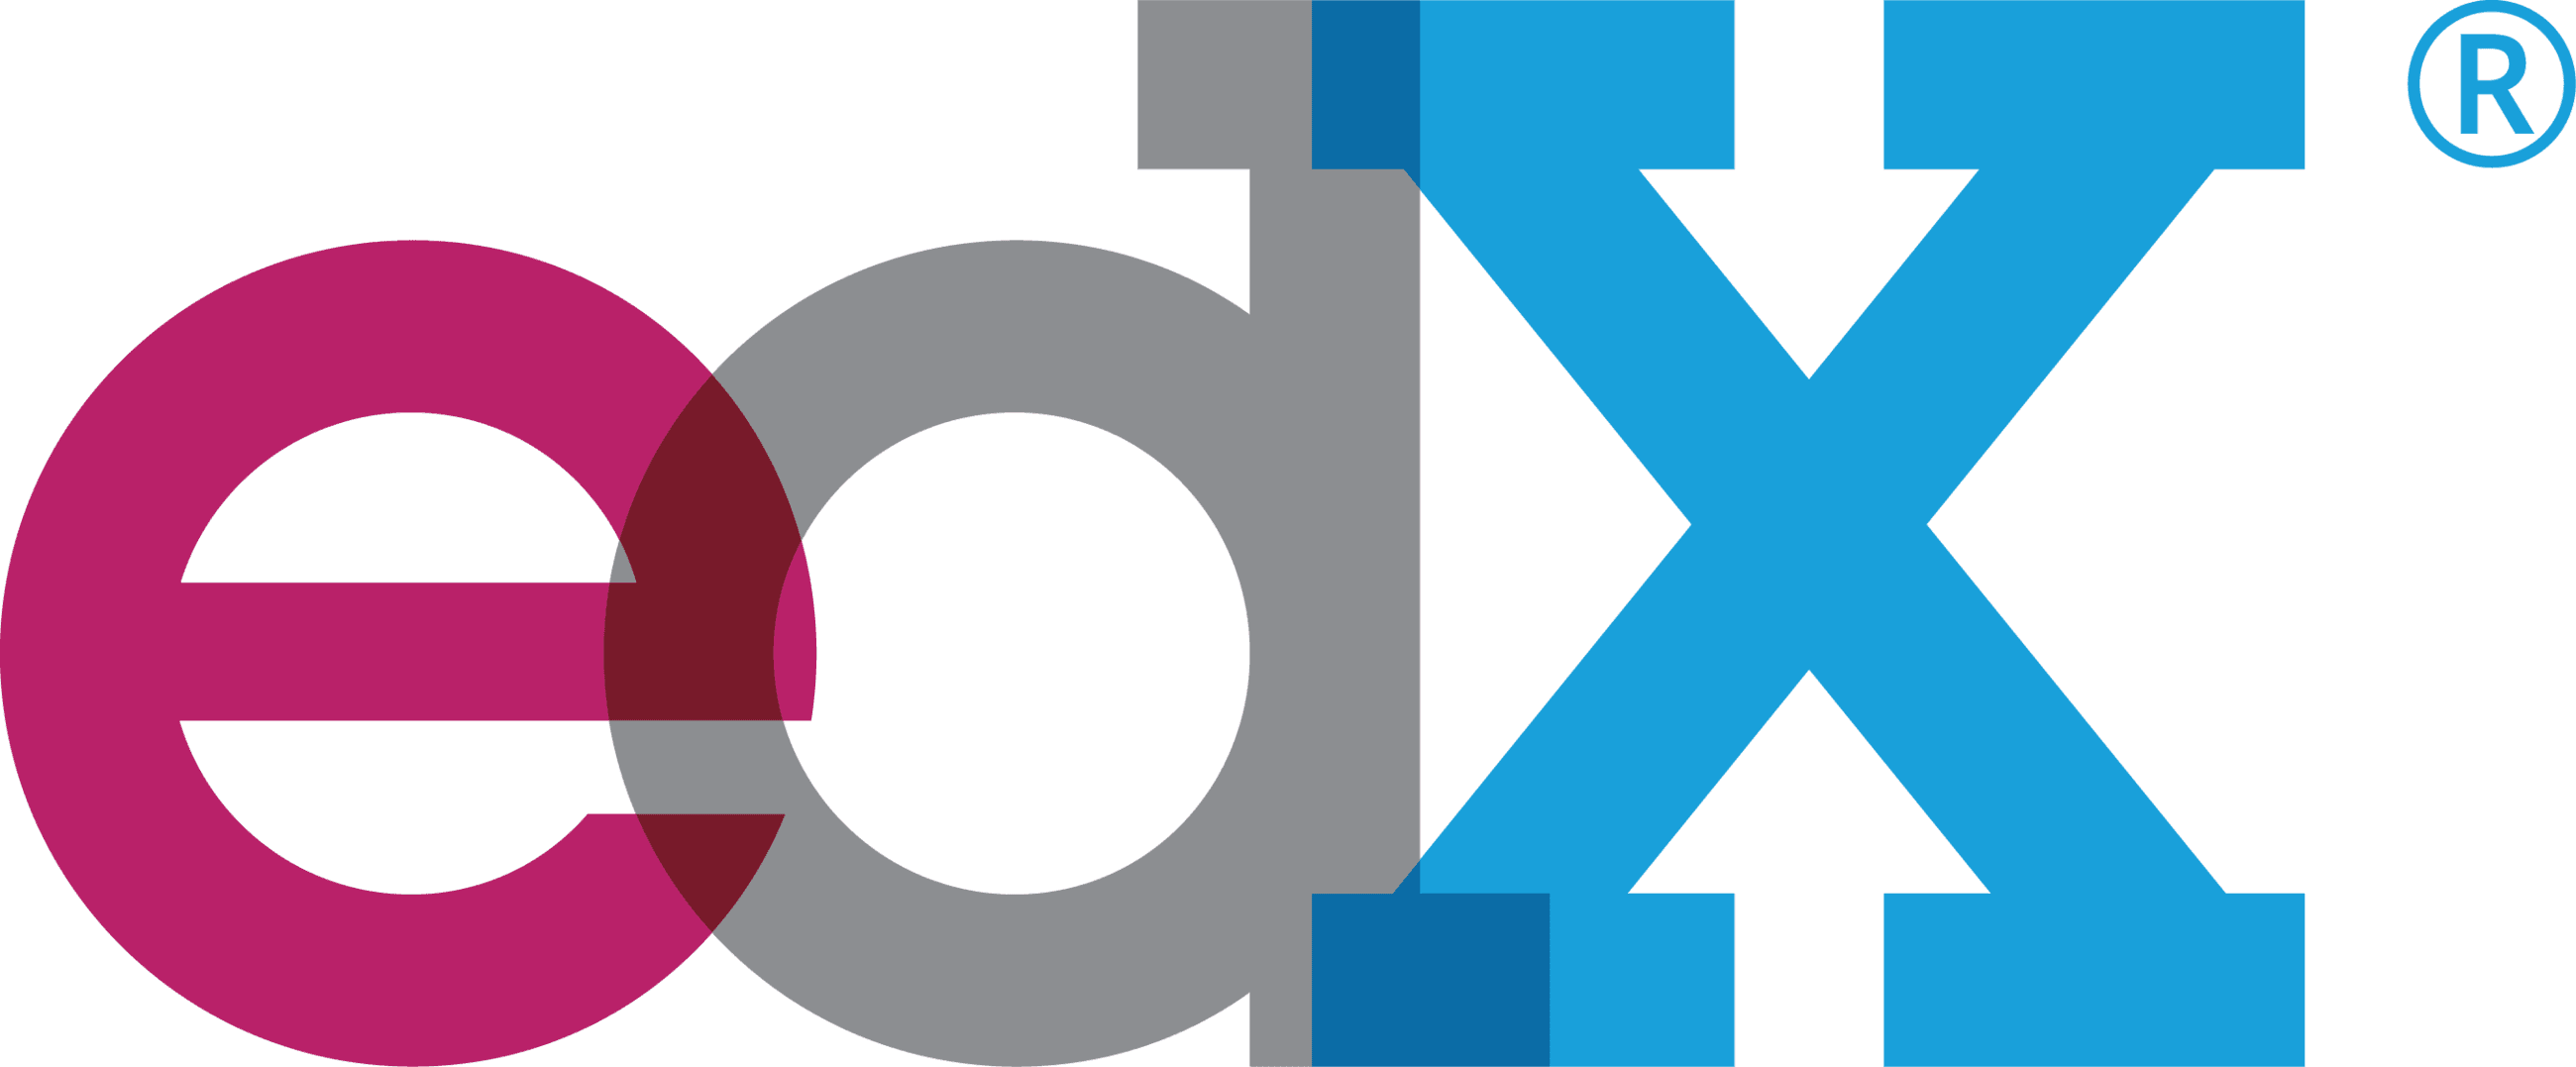 edx-logo-registered